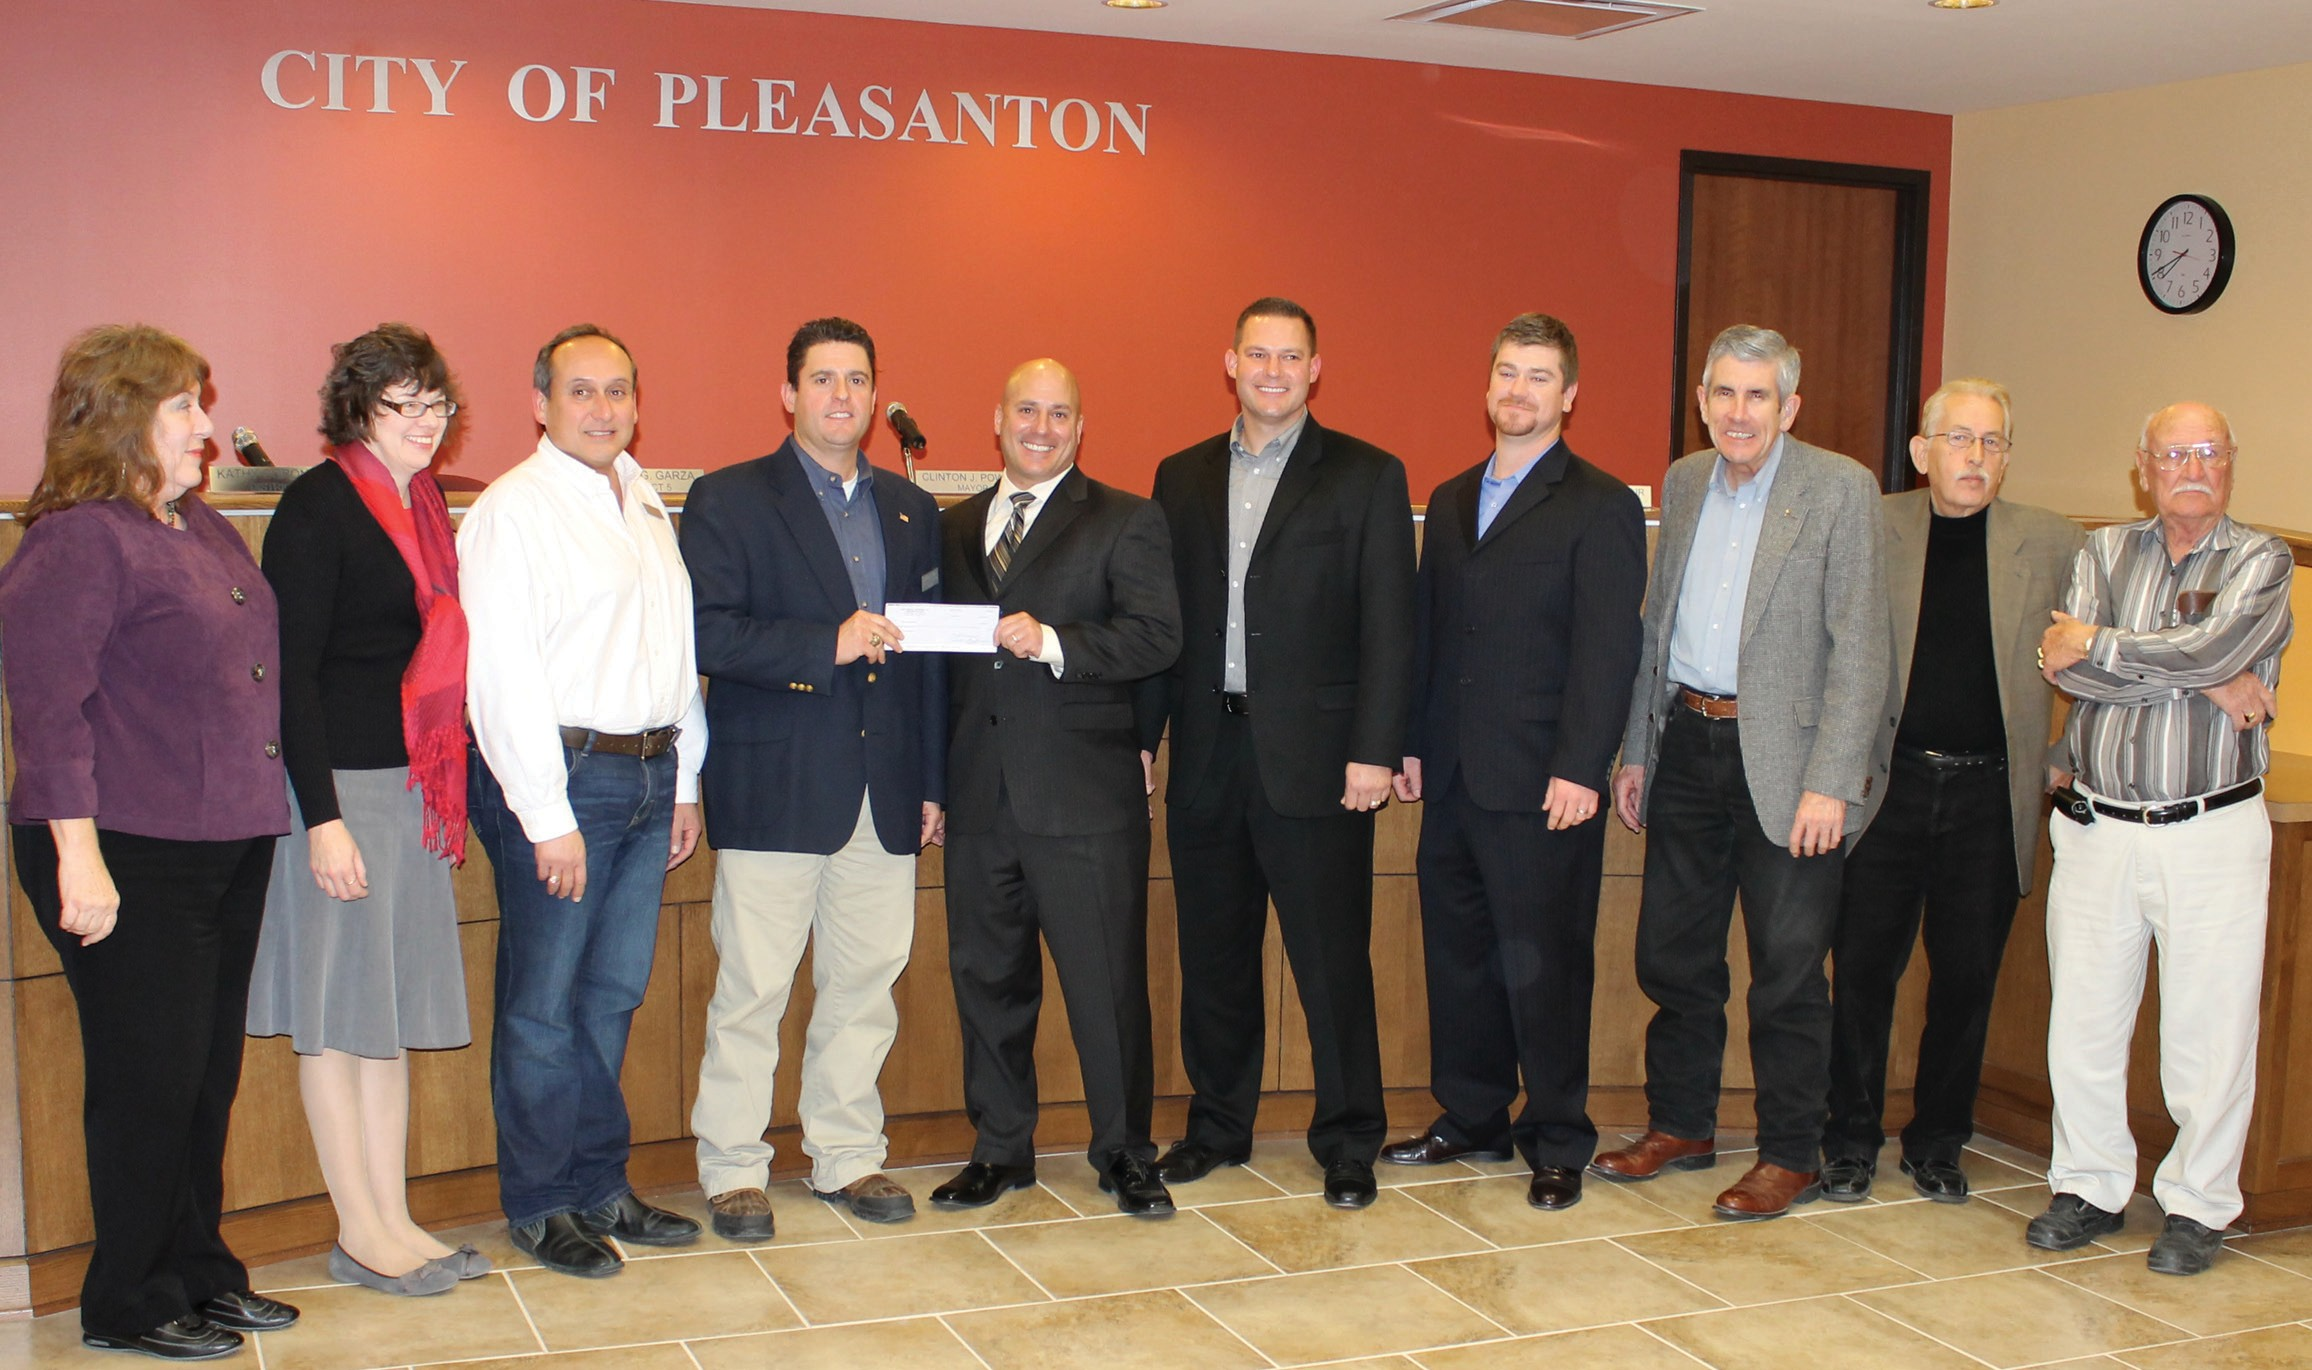 Representatives with RCW Energy Services present a $10,000 check to Pleasanton City Council for the Pleasanton Community Center and Library. Left to right are: Pleasanton Councilmembers Jeanne B. Israel, Kathy Coronado, J.R. Gallegos, Mayor Clinton J. Powell, Glenn Young, RCW Energy Services President; Brian Green, RCW Senior Vice President- Operations; Erik Schaal, RCW Regional Operations Manager; Councilmembers Jimmy Magel, Roger G. Garza and Abraham Saenz.